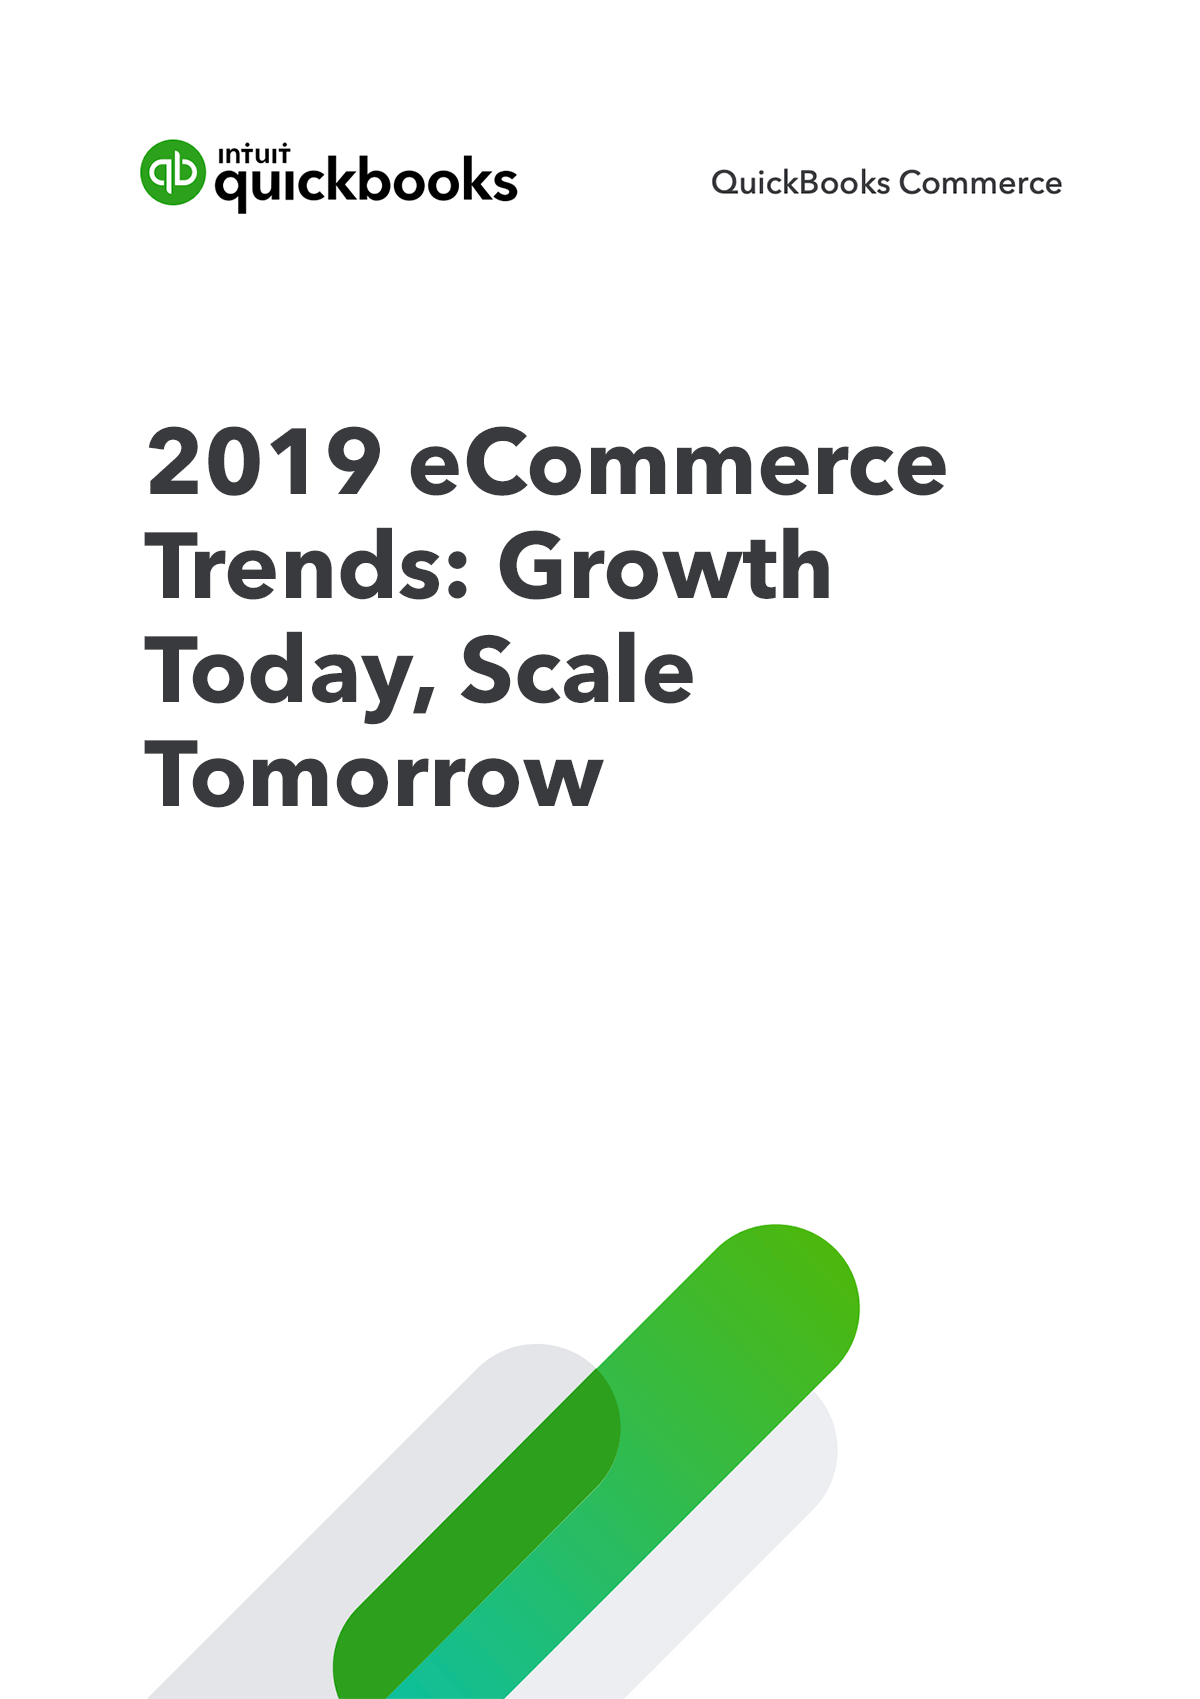 2019 eCommerce Trends: Growth Today, Scale Tomorrow